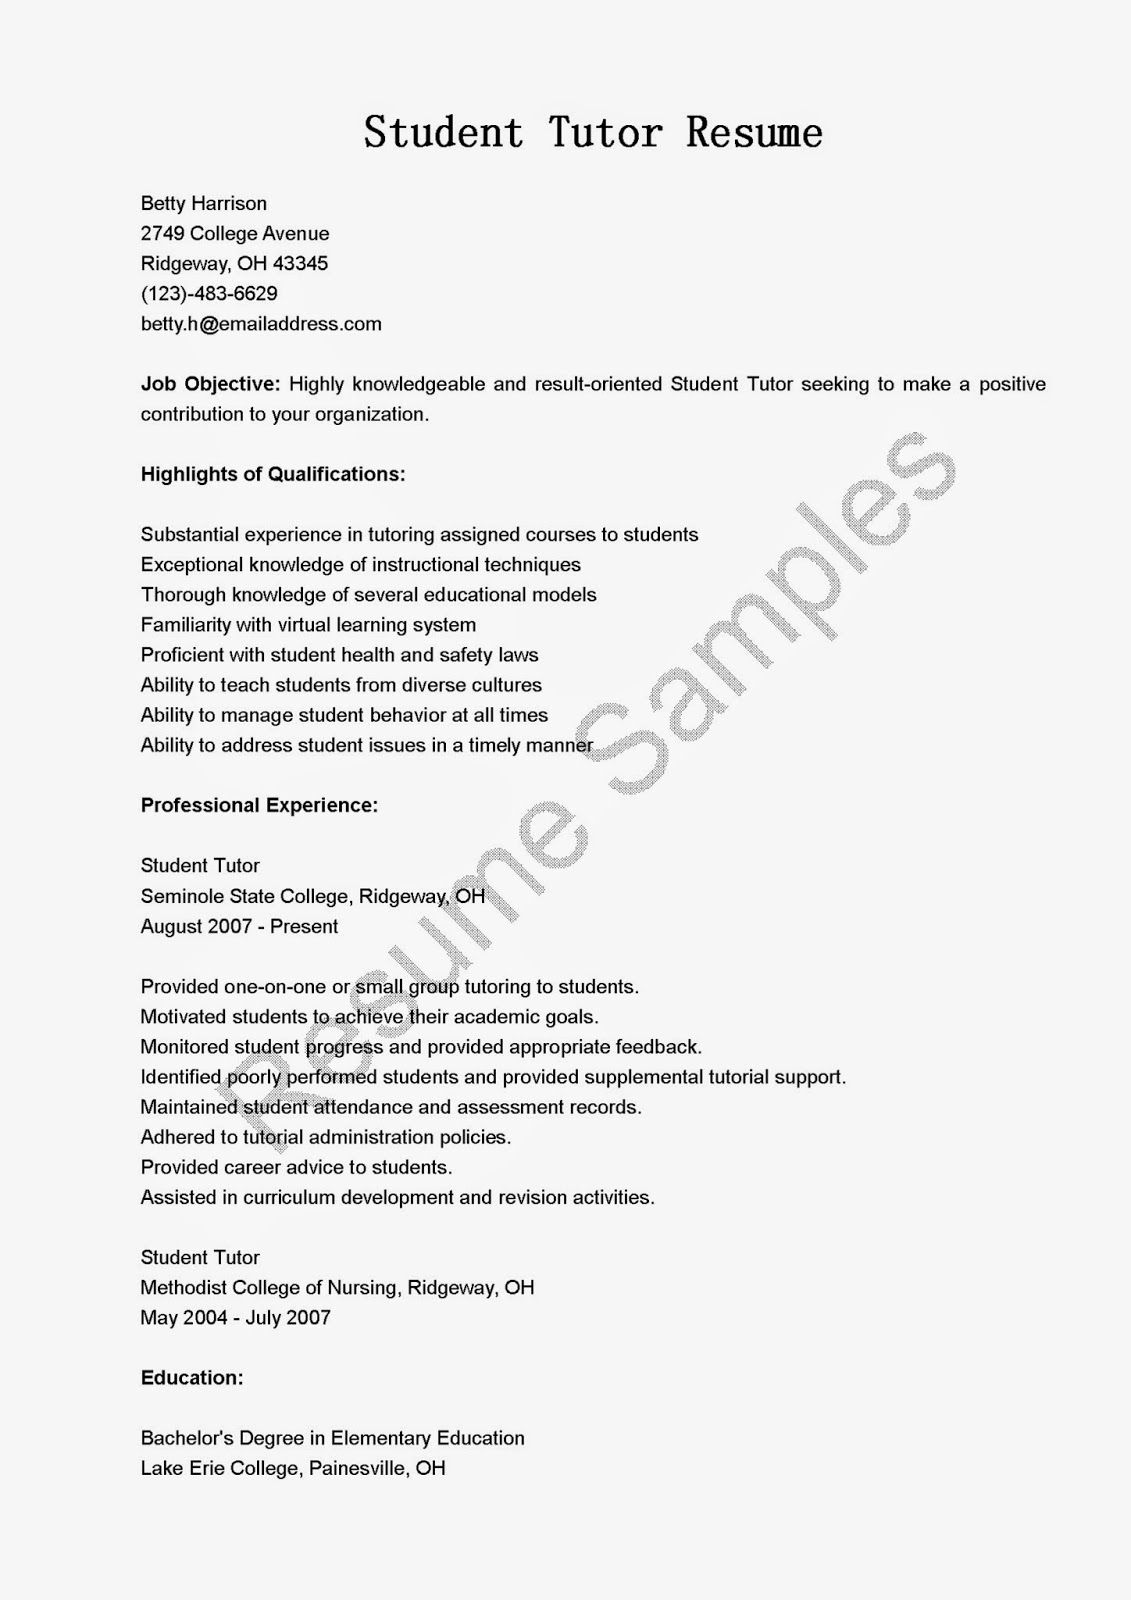 Tutor Resume Template Free Samples Examples Format Lewesmr Resume Tutor  Resume Tutor Volunteer Tutor Resume Example